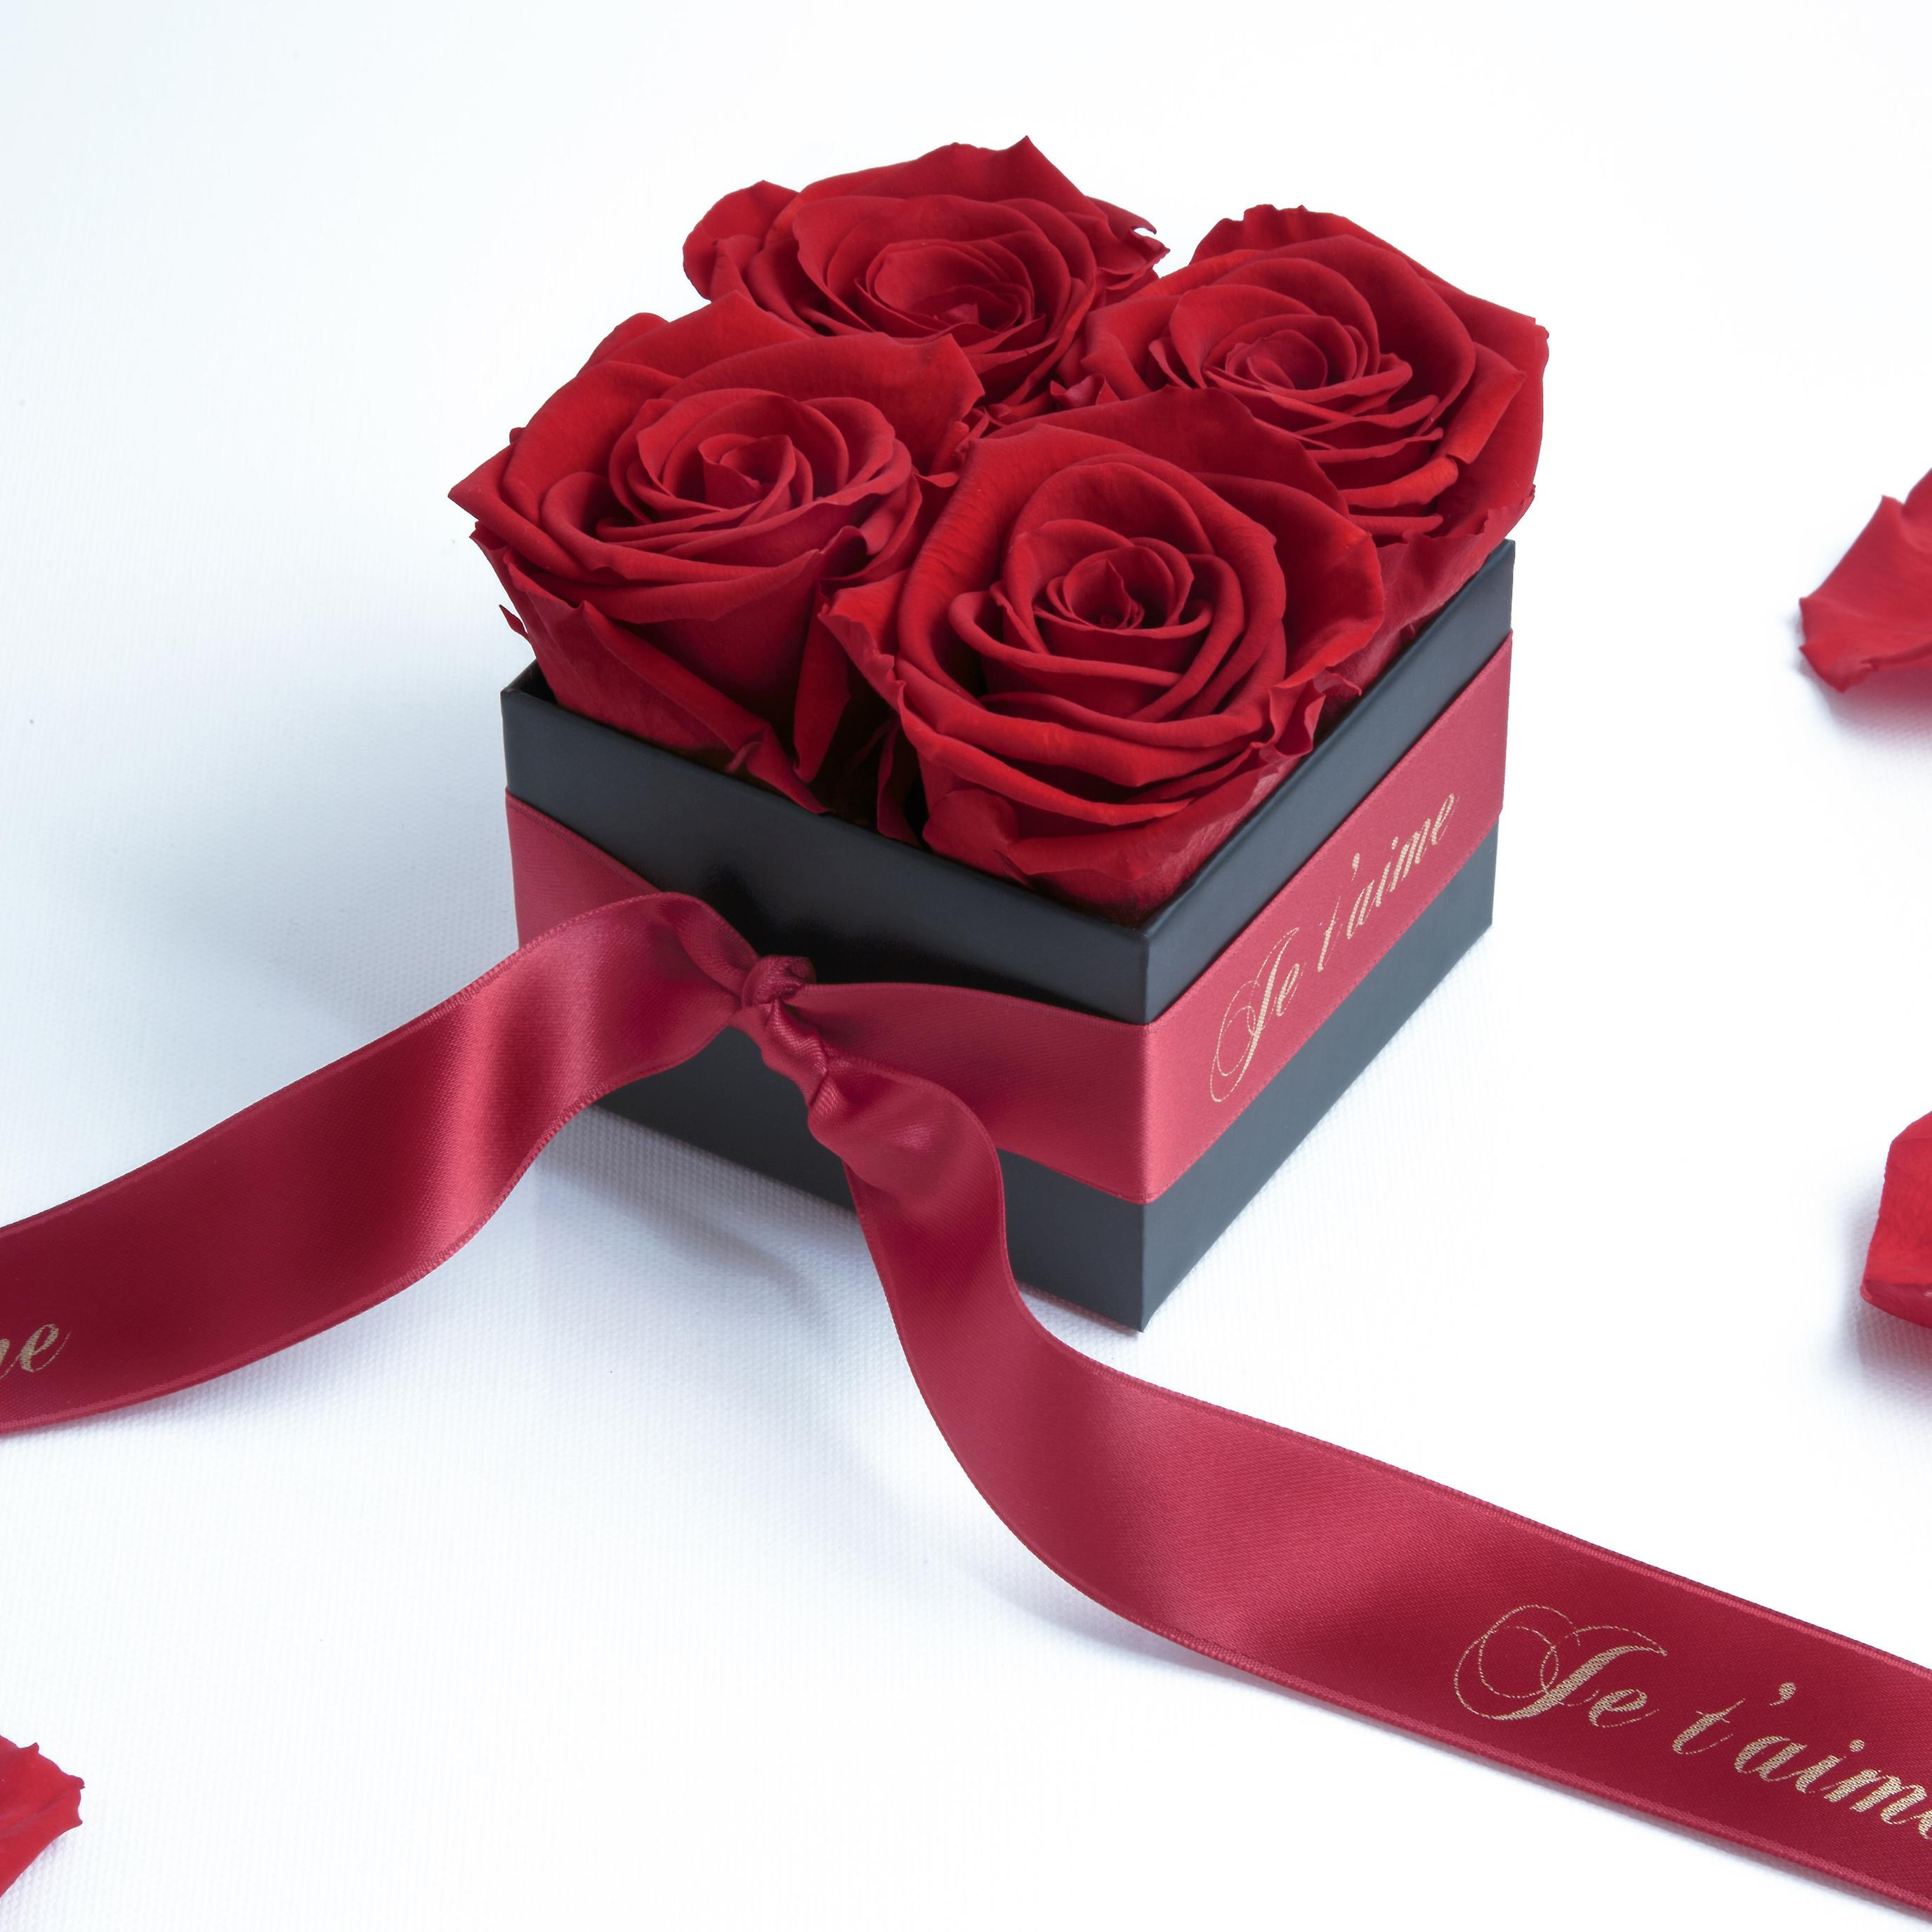 Je t'aime box with 4 red and satin ribbon roses preserved stable 3 years